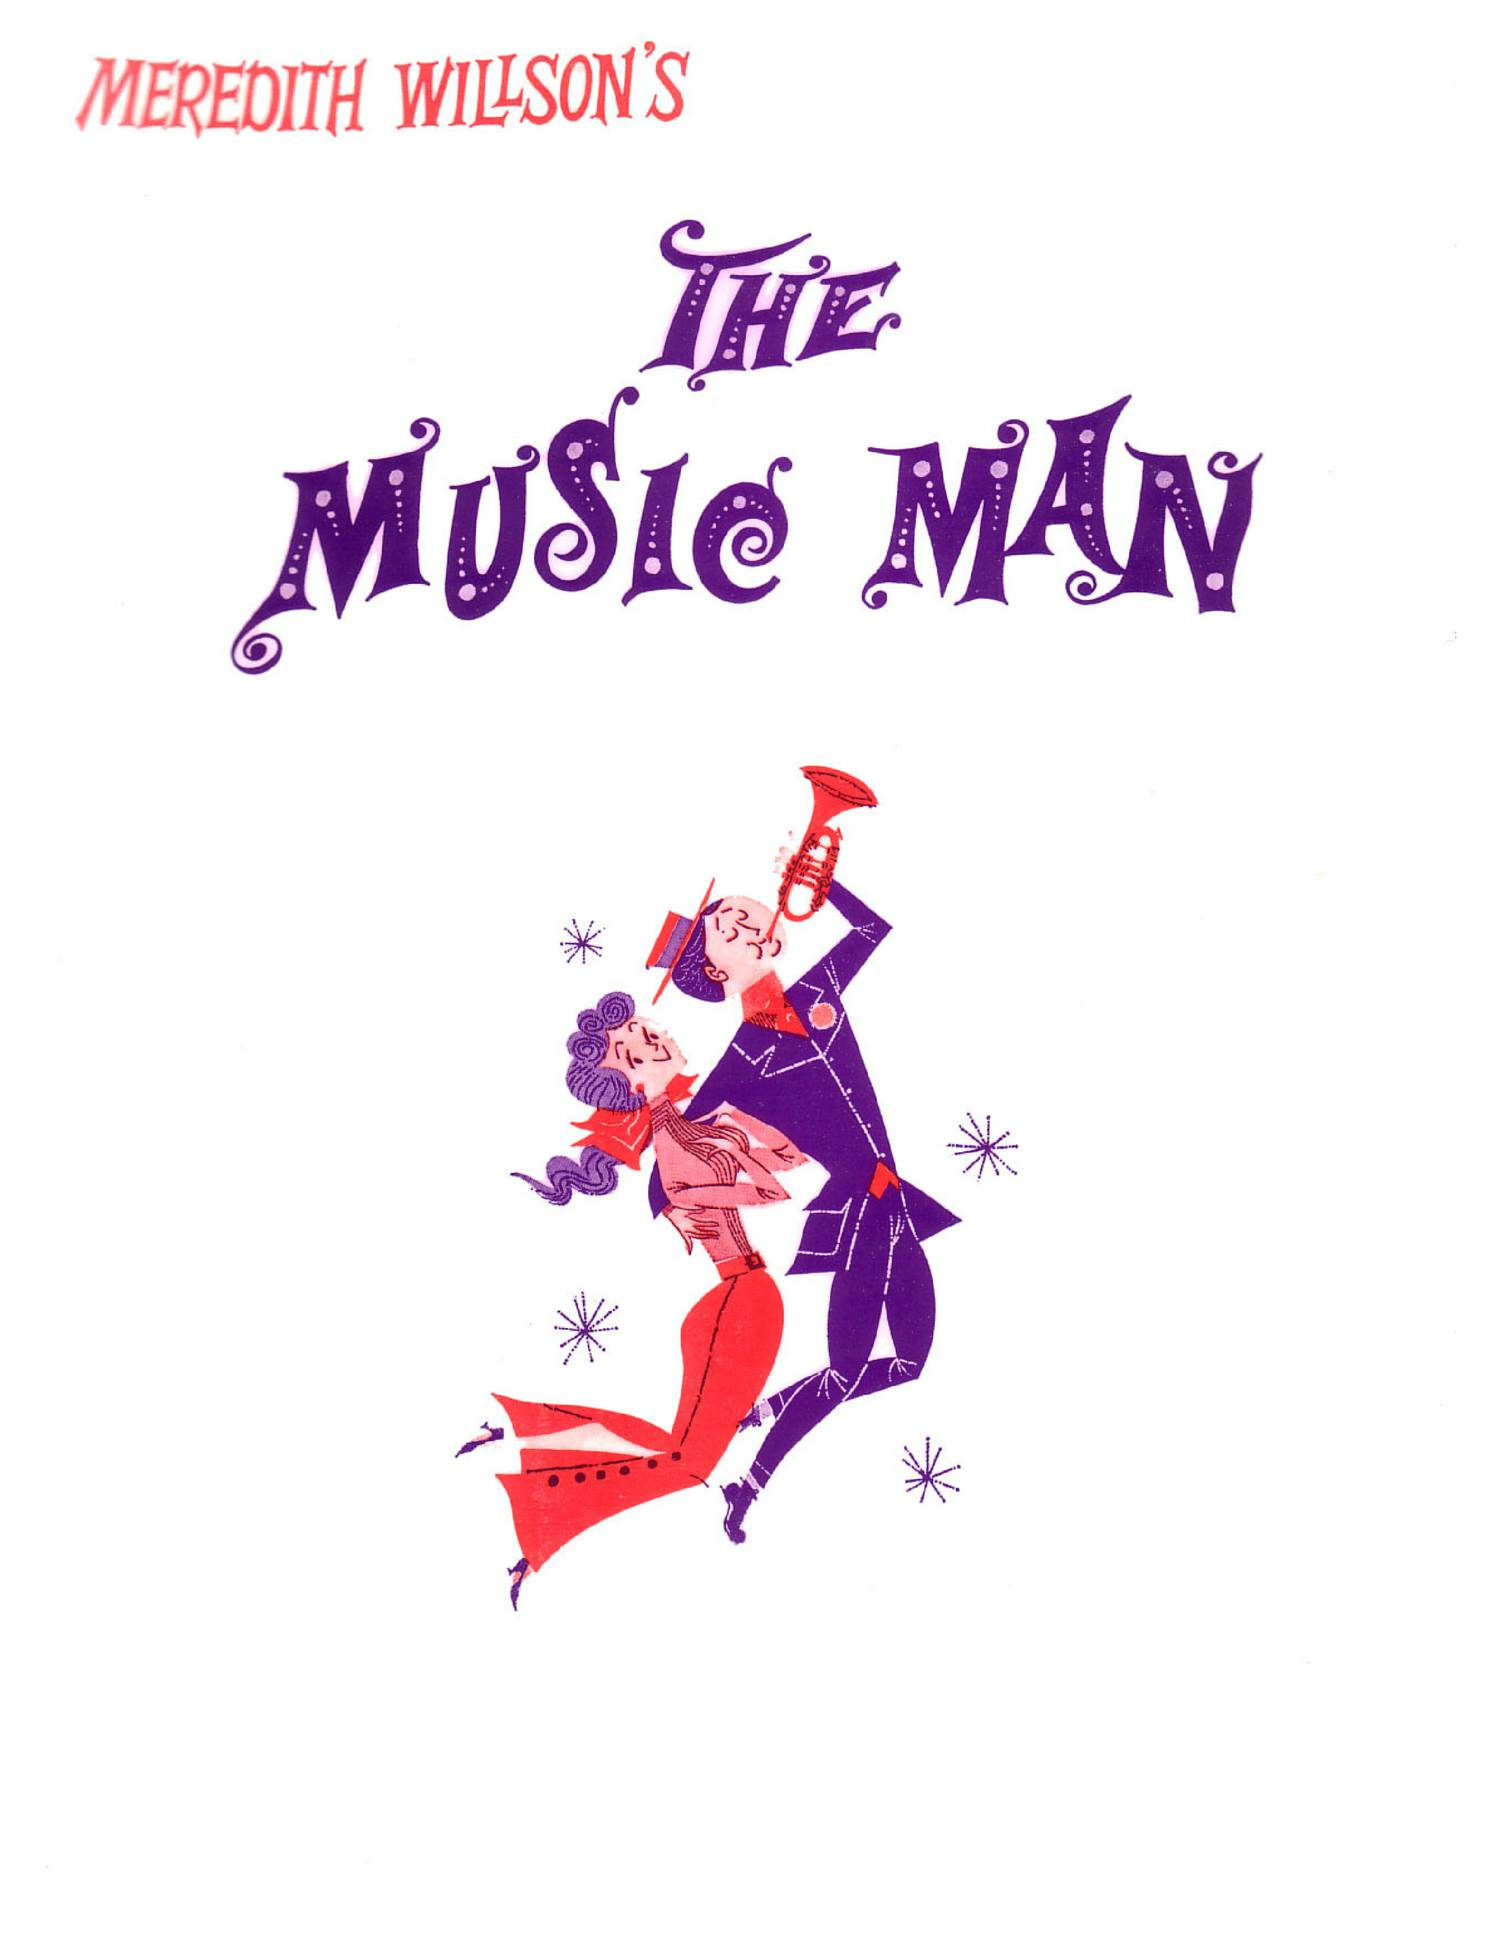 The Music Man - Score pdf | DocDroid